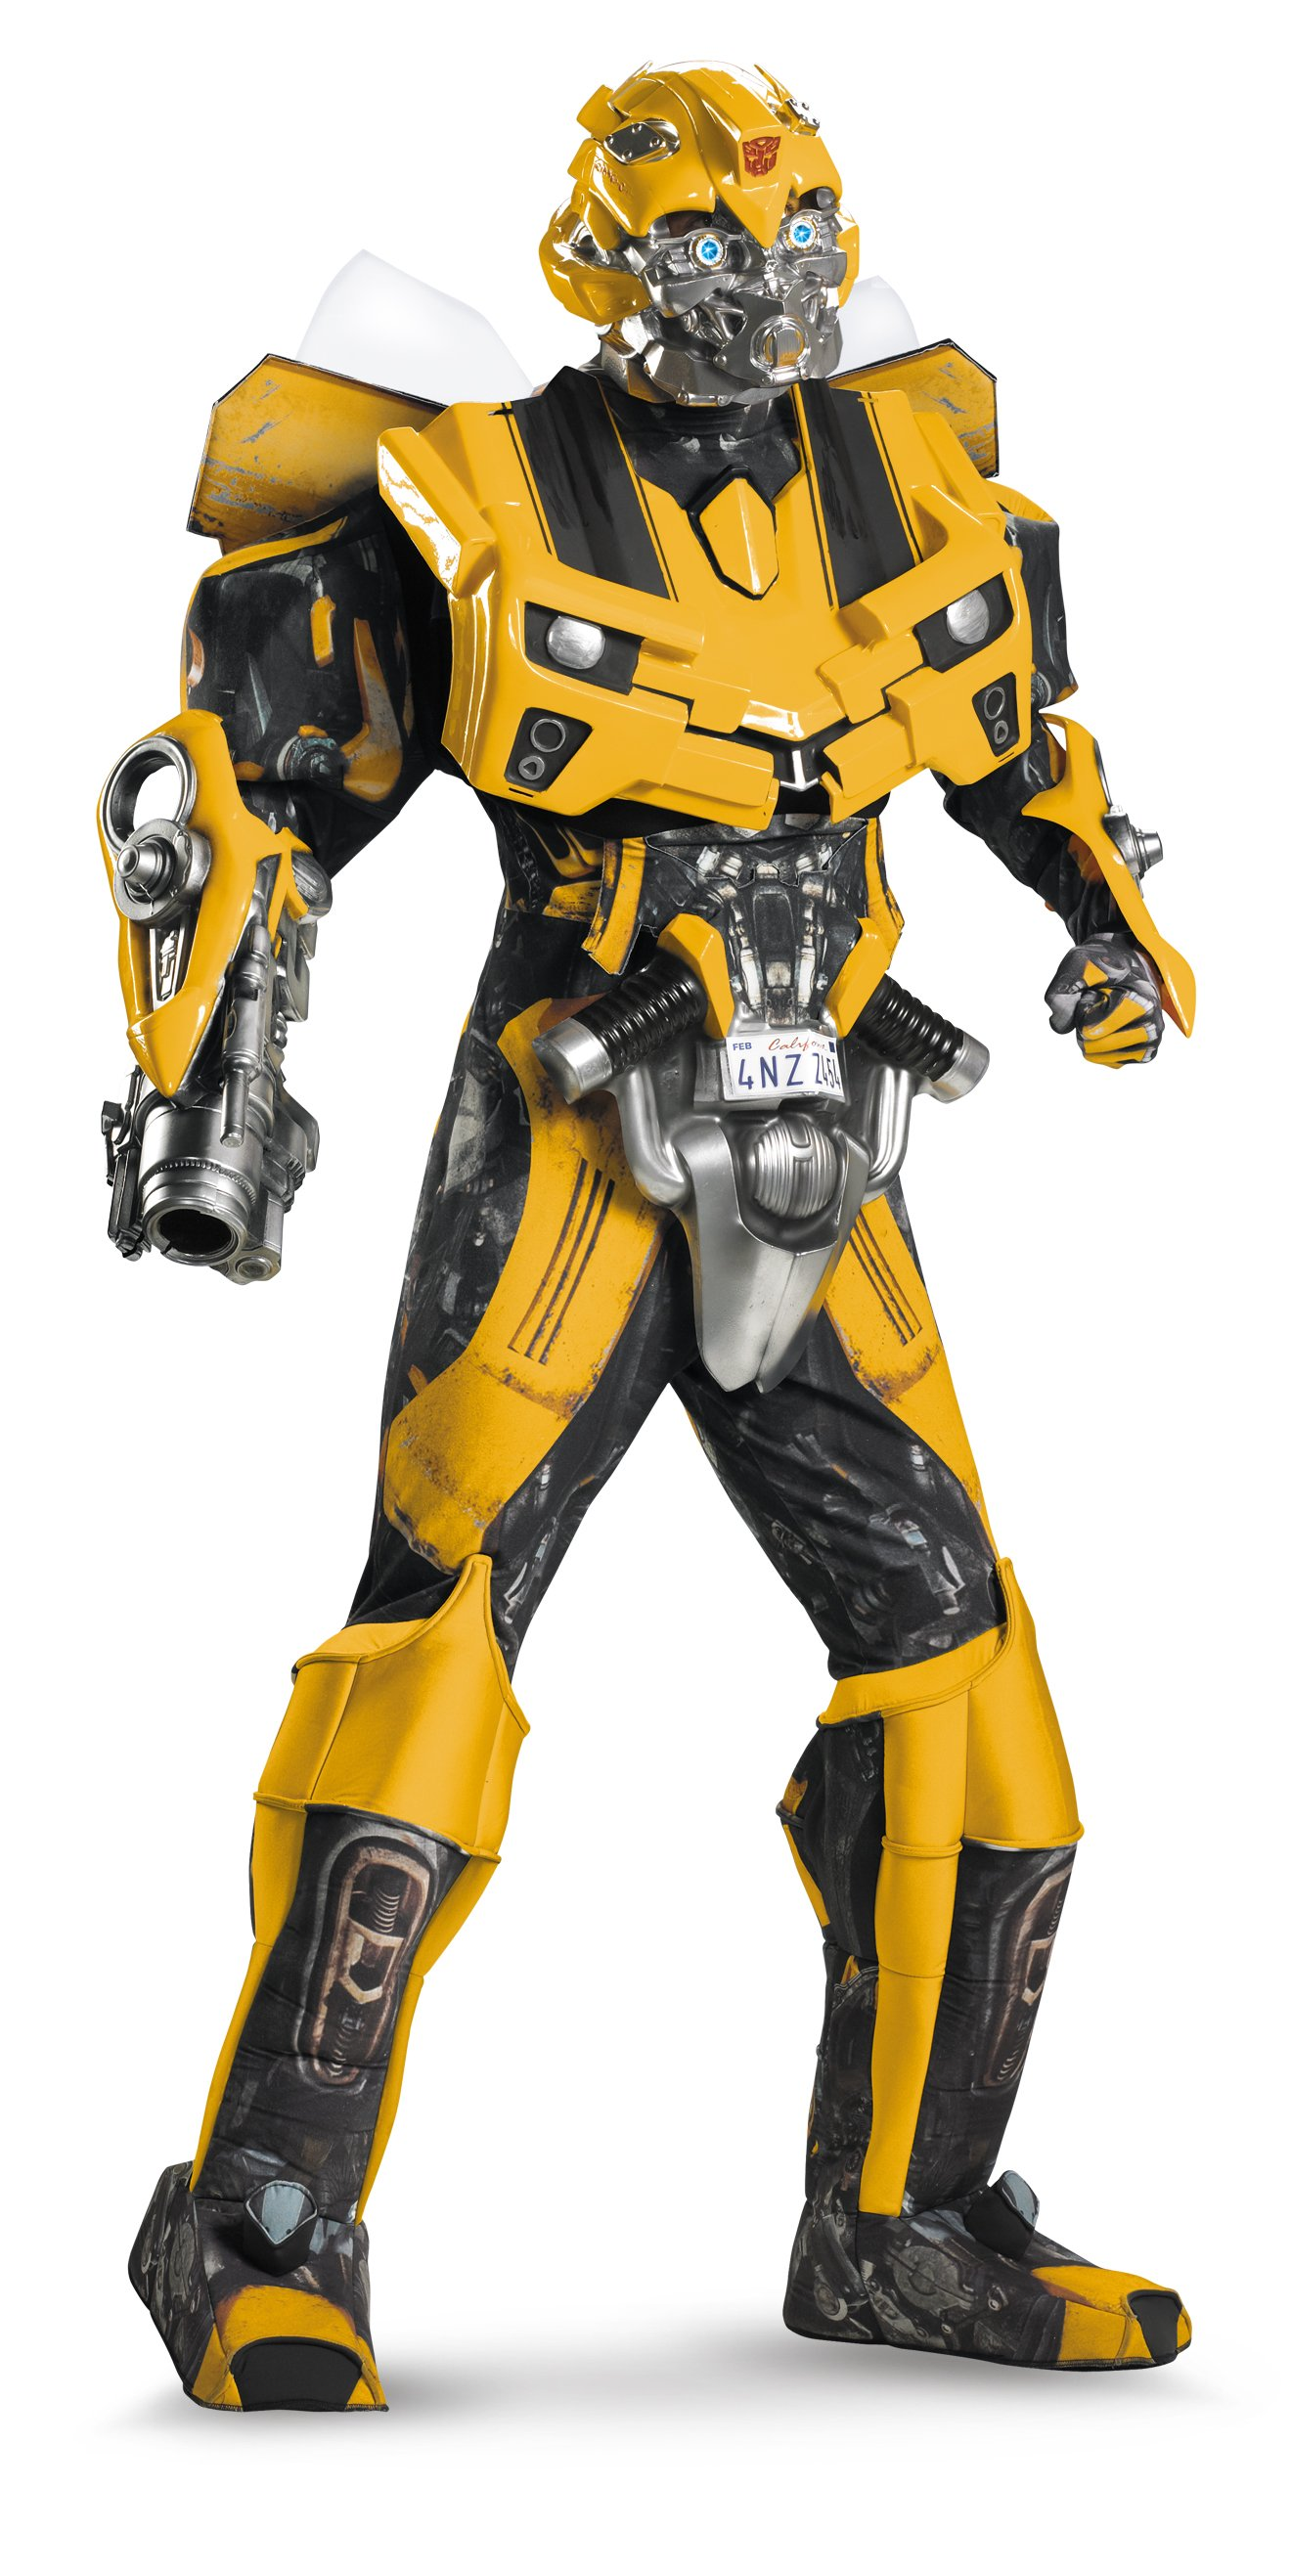 Transformers 3 Dark Of The Moon Movie - Bumblebee 3D Theatrical